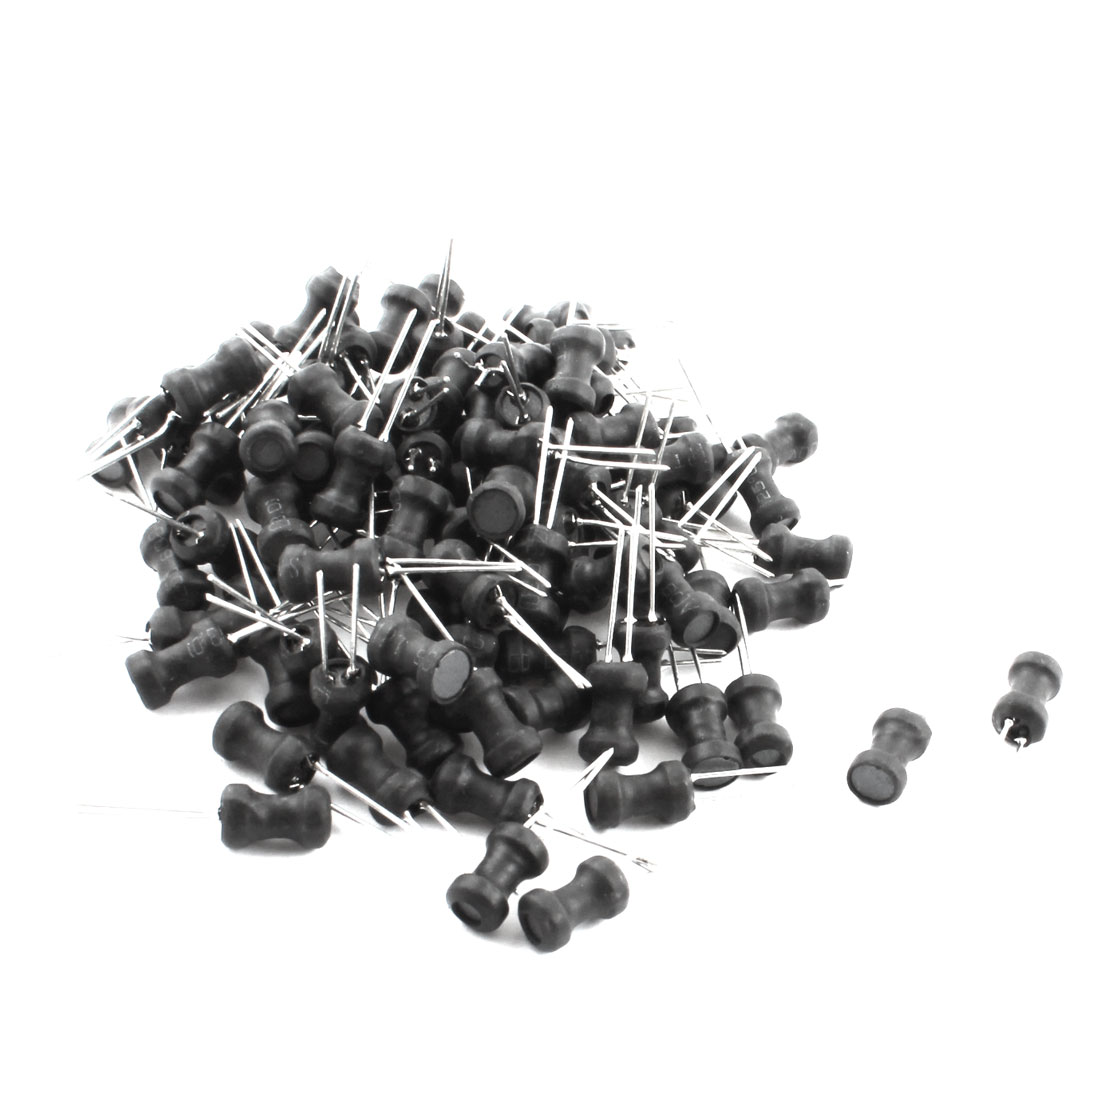 100Pcs 27uH 850mA 6x10mm 10% Tolerance Shielded Radial Lead Inductor Black